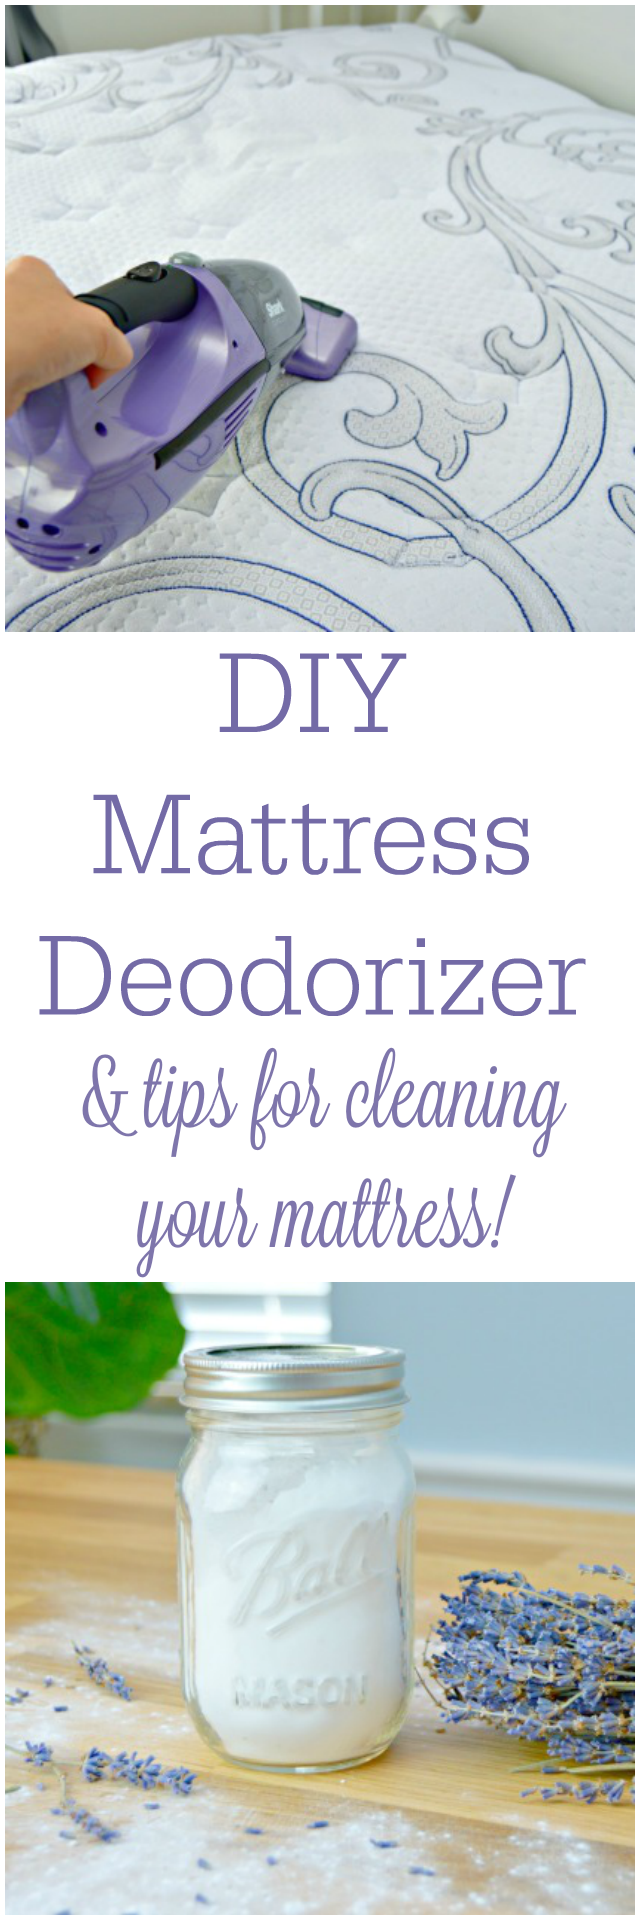 How To Get A Clean Mattress and DIY Mattress Deodorizer